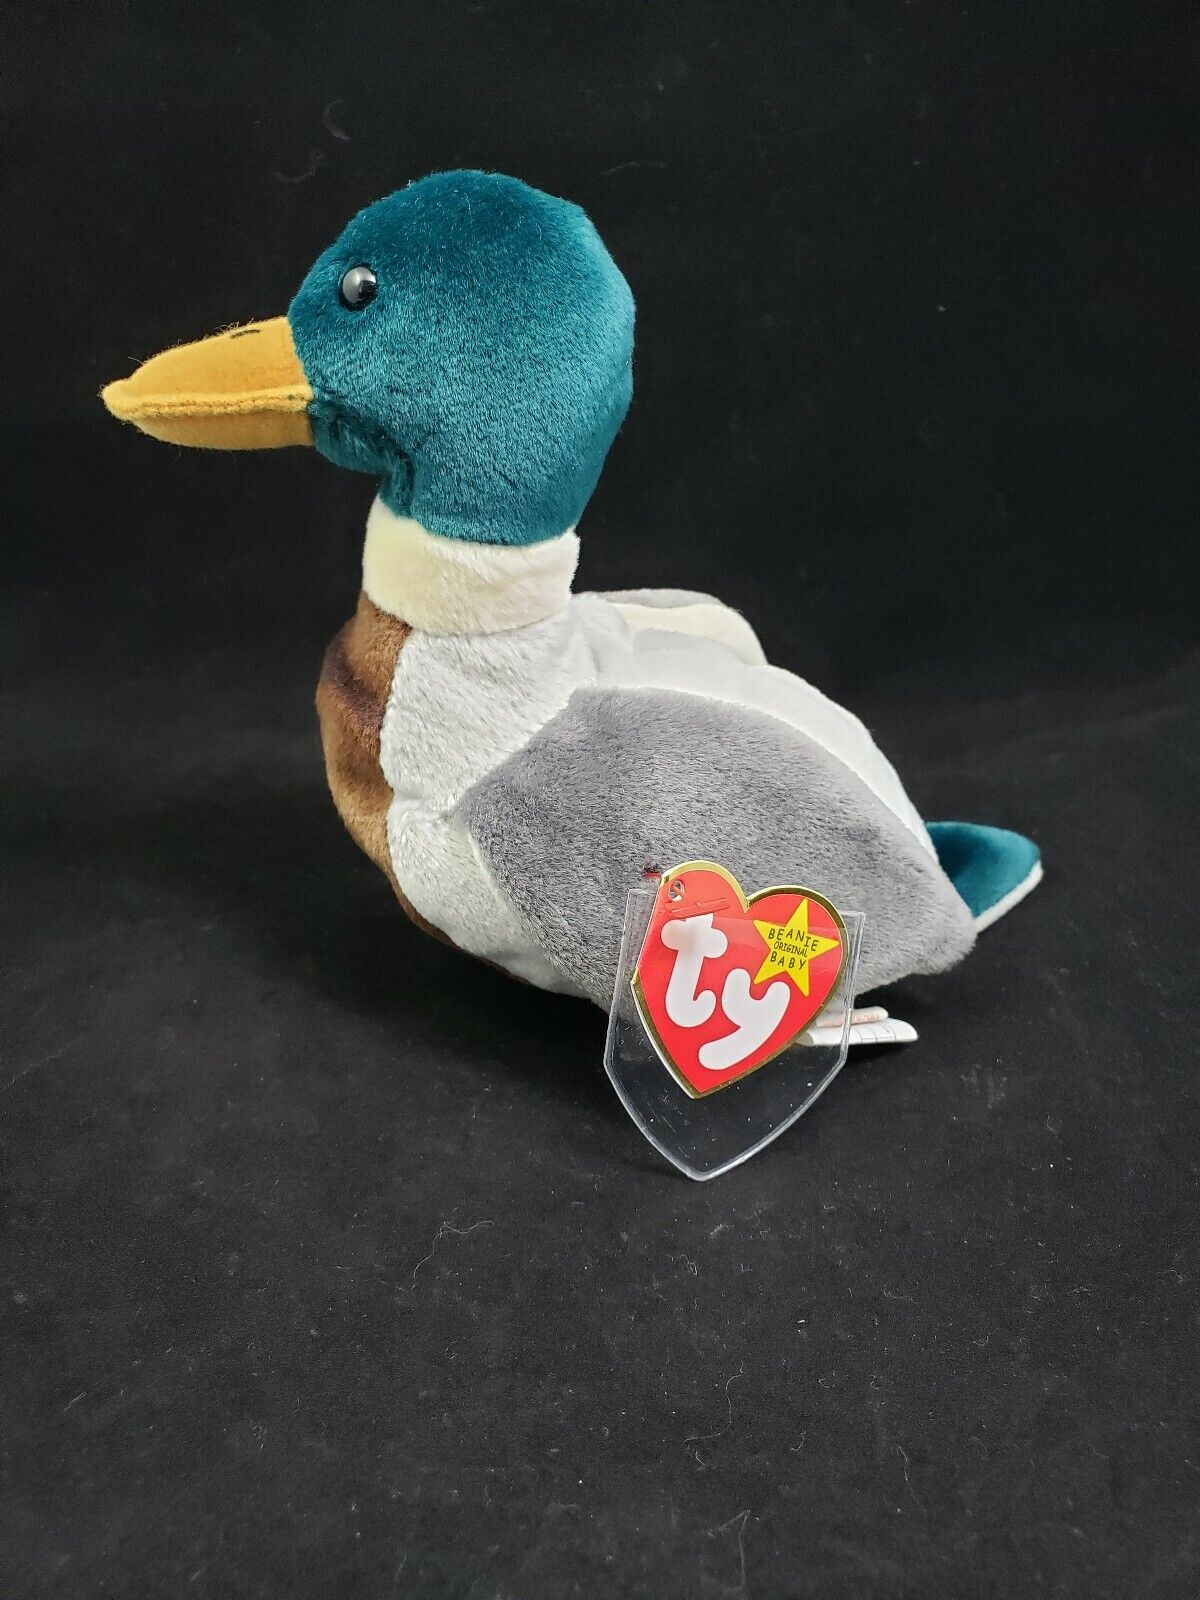 TY Beanie Baby Jake Rare with Errors1997 1998 Tag Errors Tush Tag Red Stamp